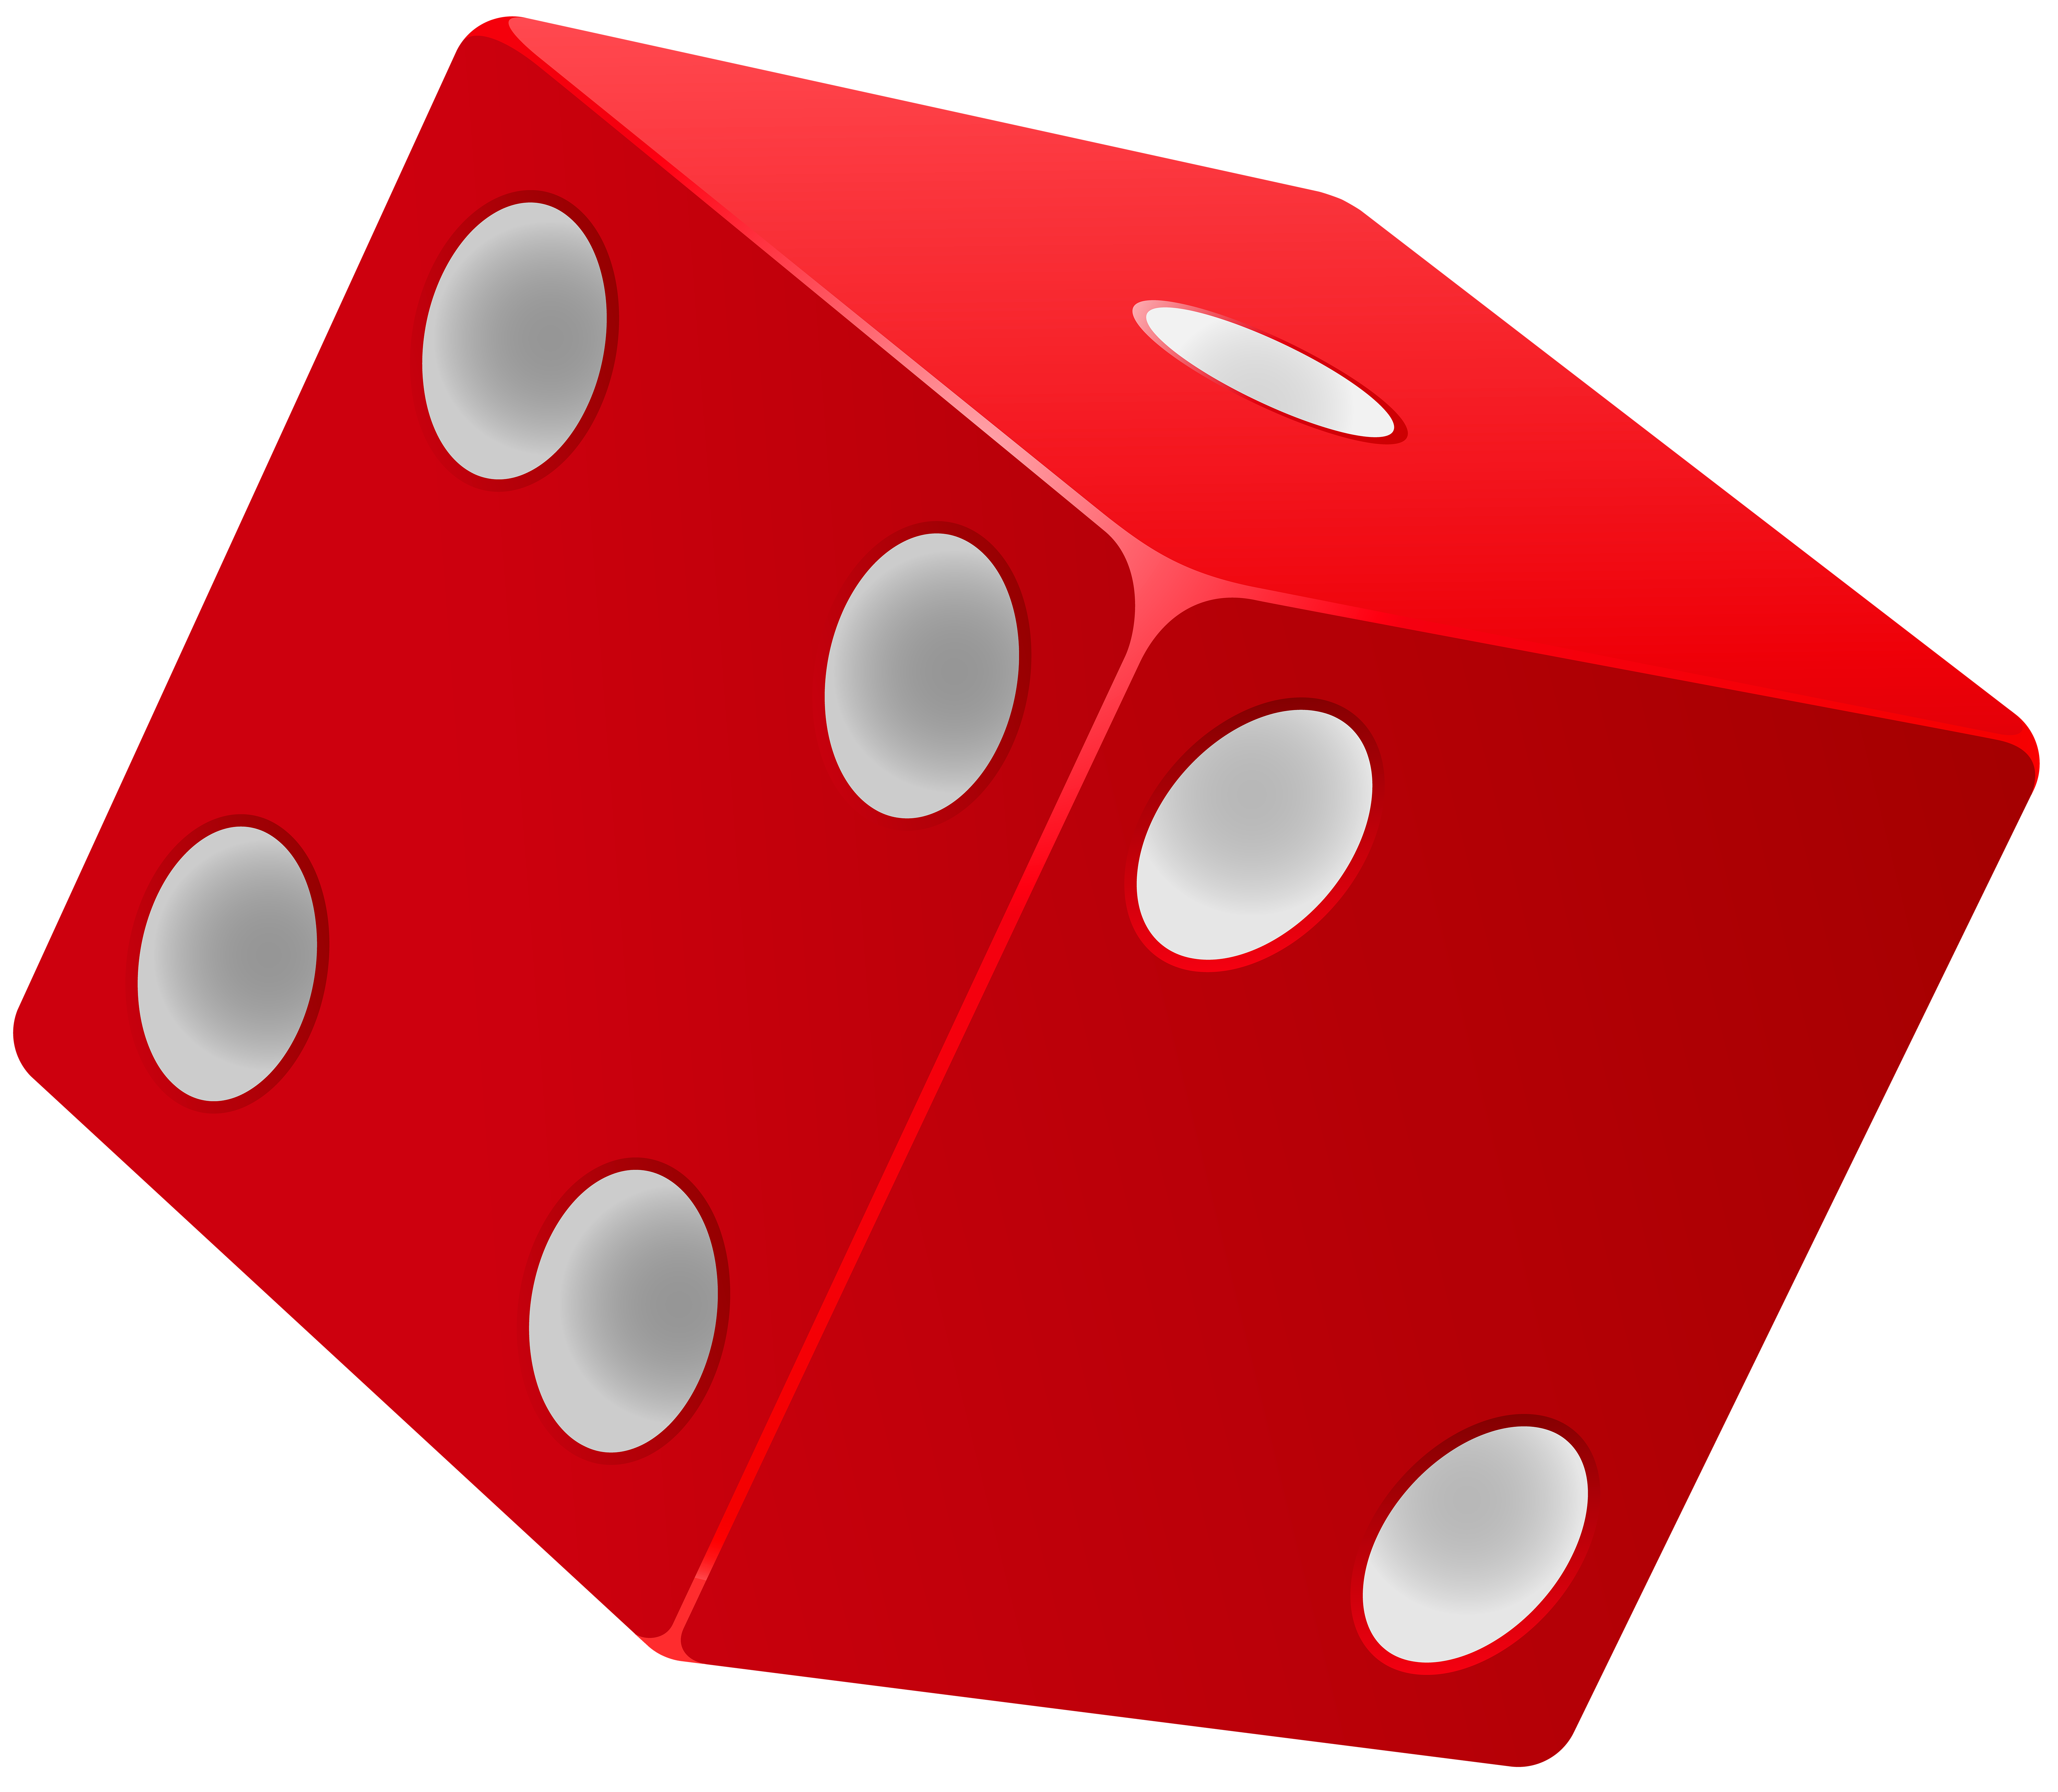 Dice clipart cool, Dice cool Transparent FREE for download